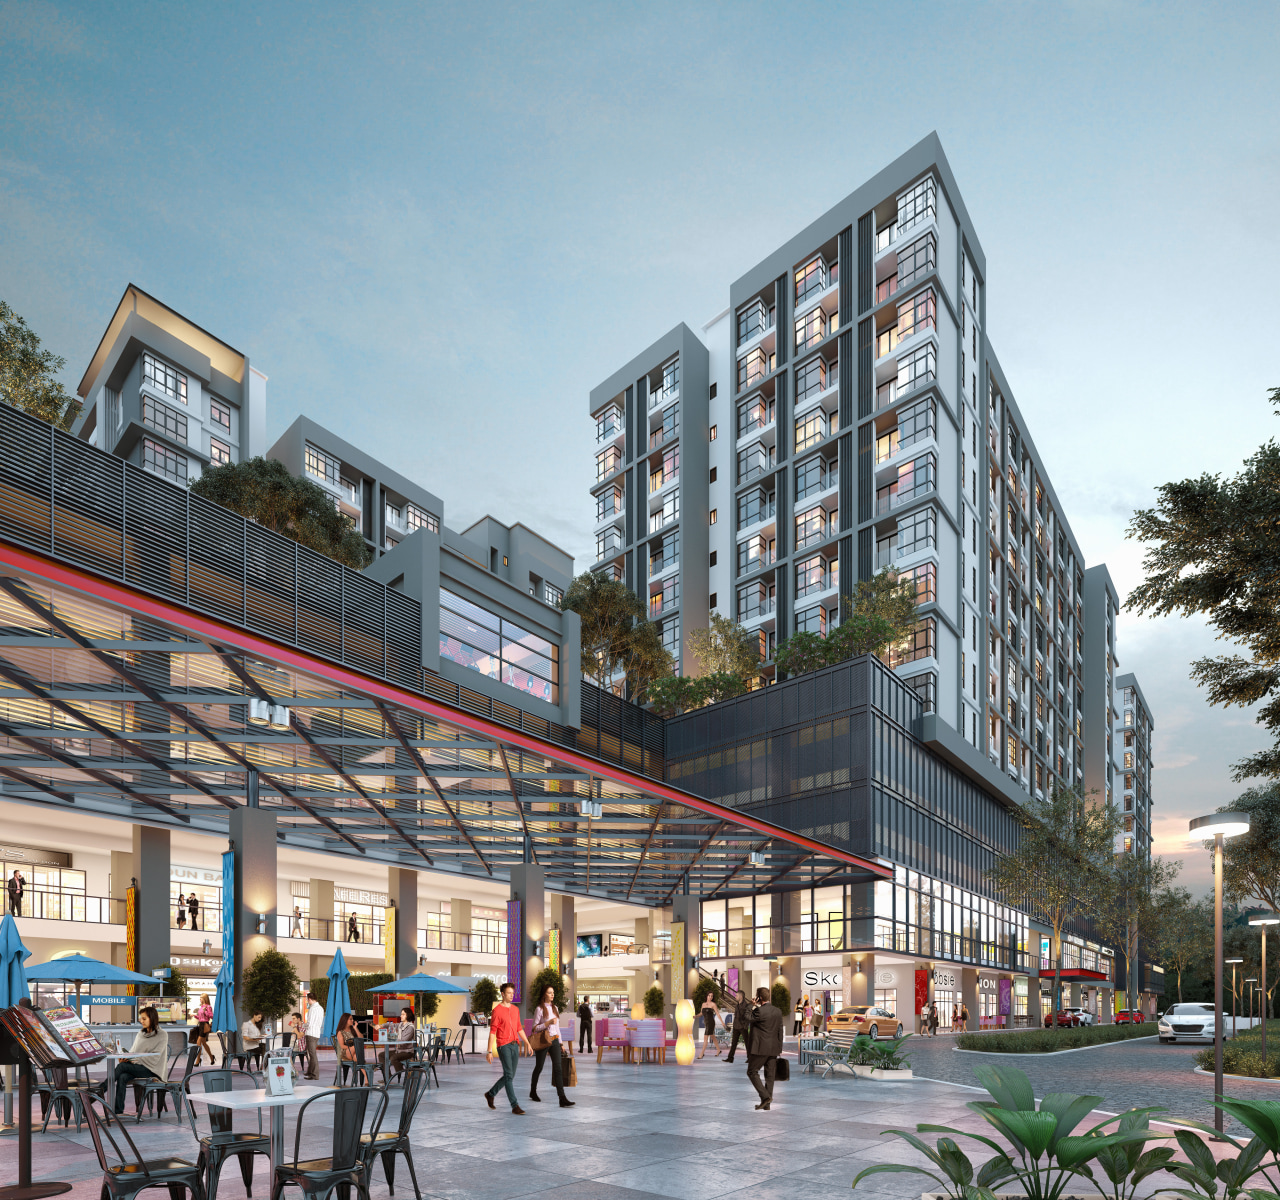 The 11,148m² Utropolis Marketplace enhances the appeal of building, city, commercial building, condominium, metropolis, metropolitan area, mixed use, neighbourhood, plaza, real estate, residential area, shopping mall, urban design, gray